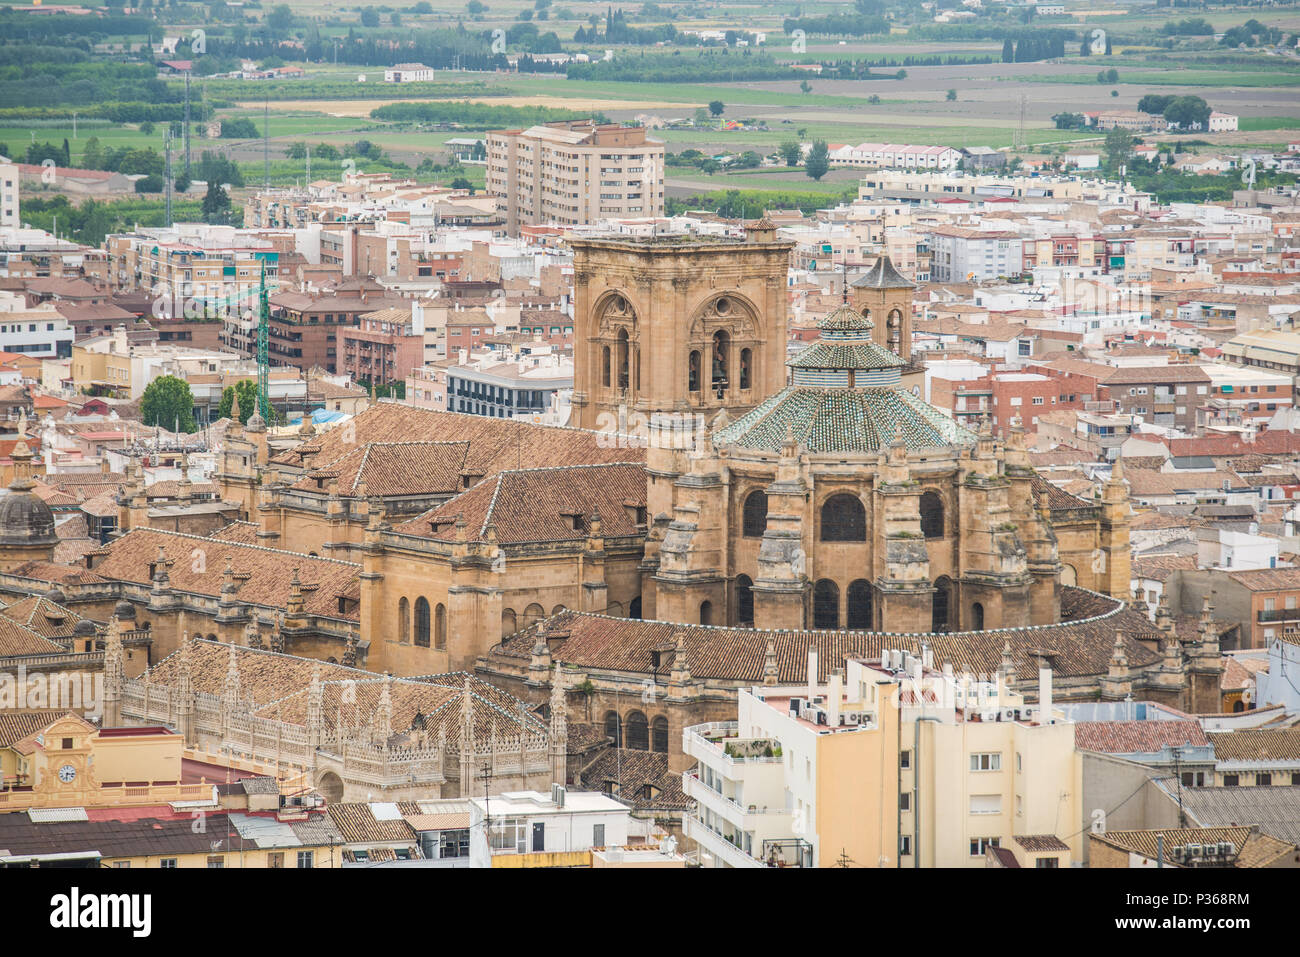 The Granada cathedral as viewed from the Alhambra. - Stock Image